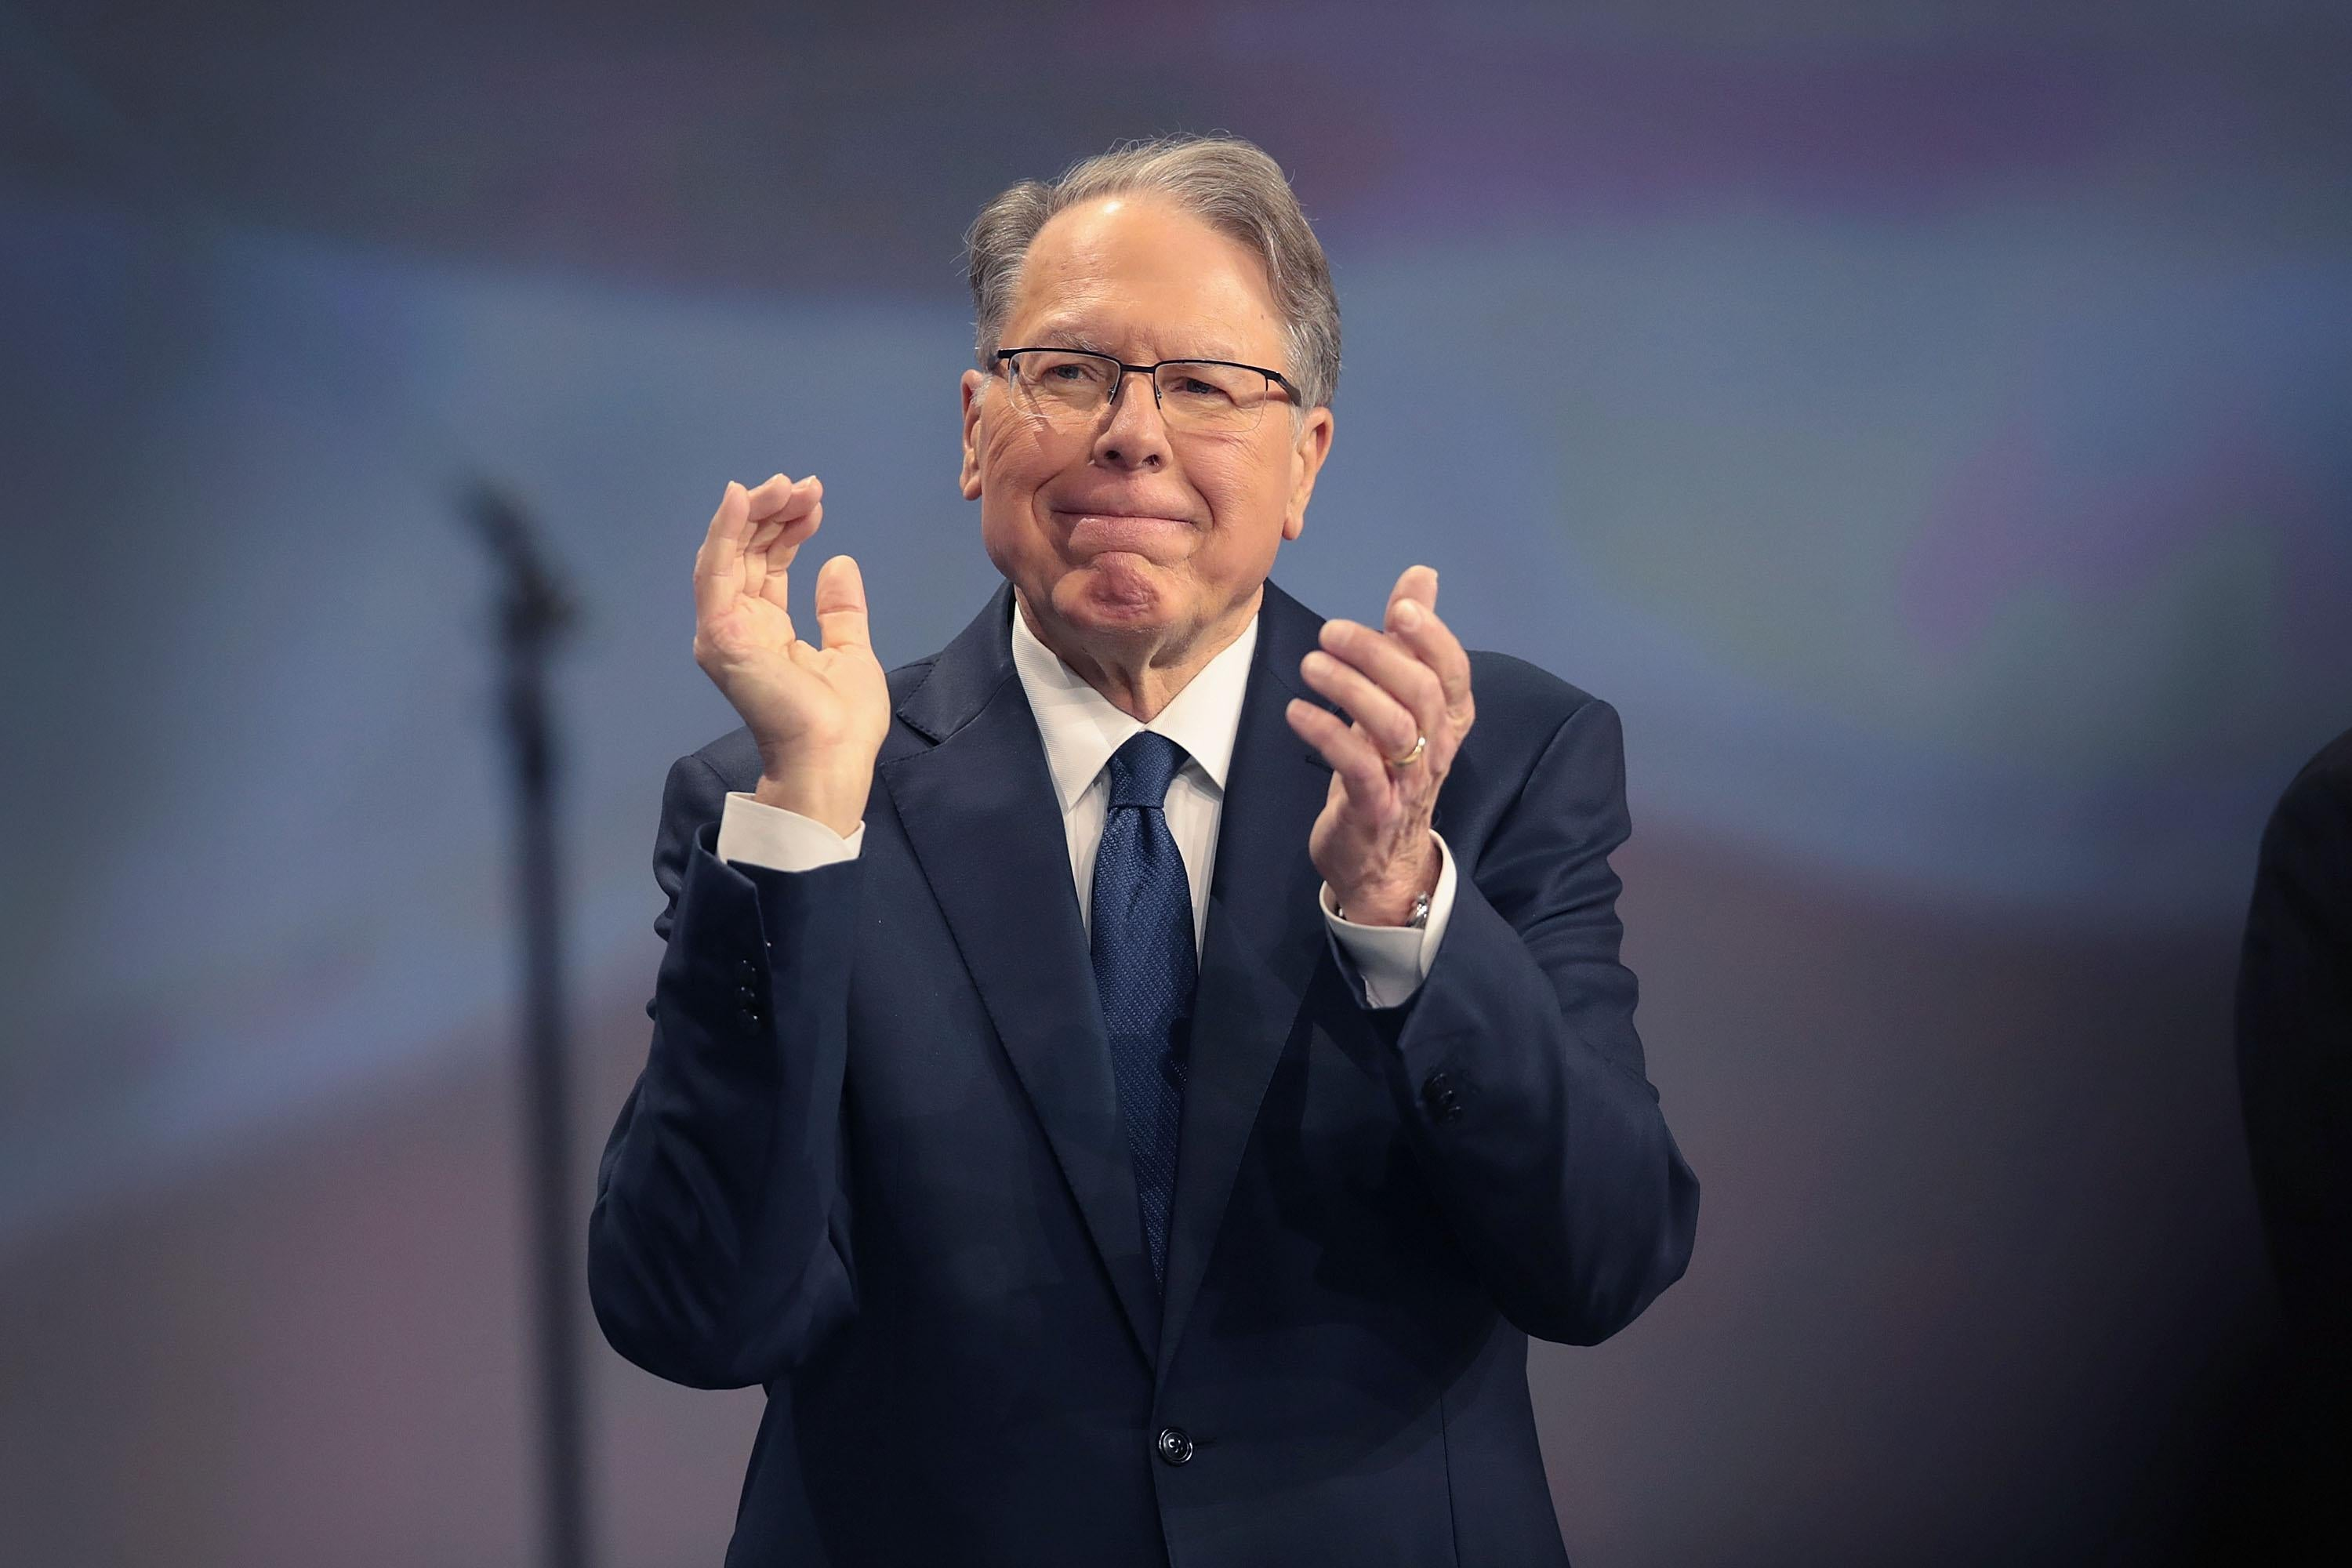 Wayne LaPierre applauds as he stands on stage.